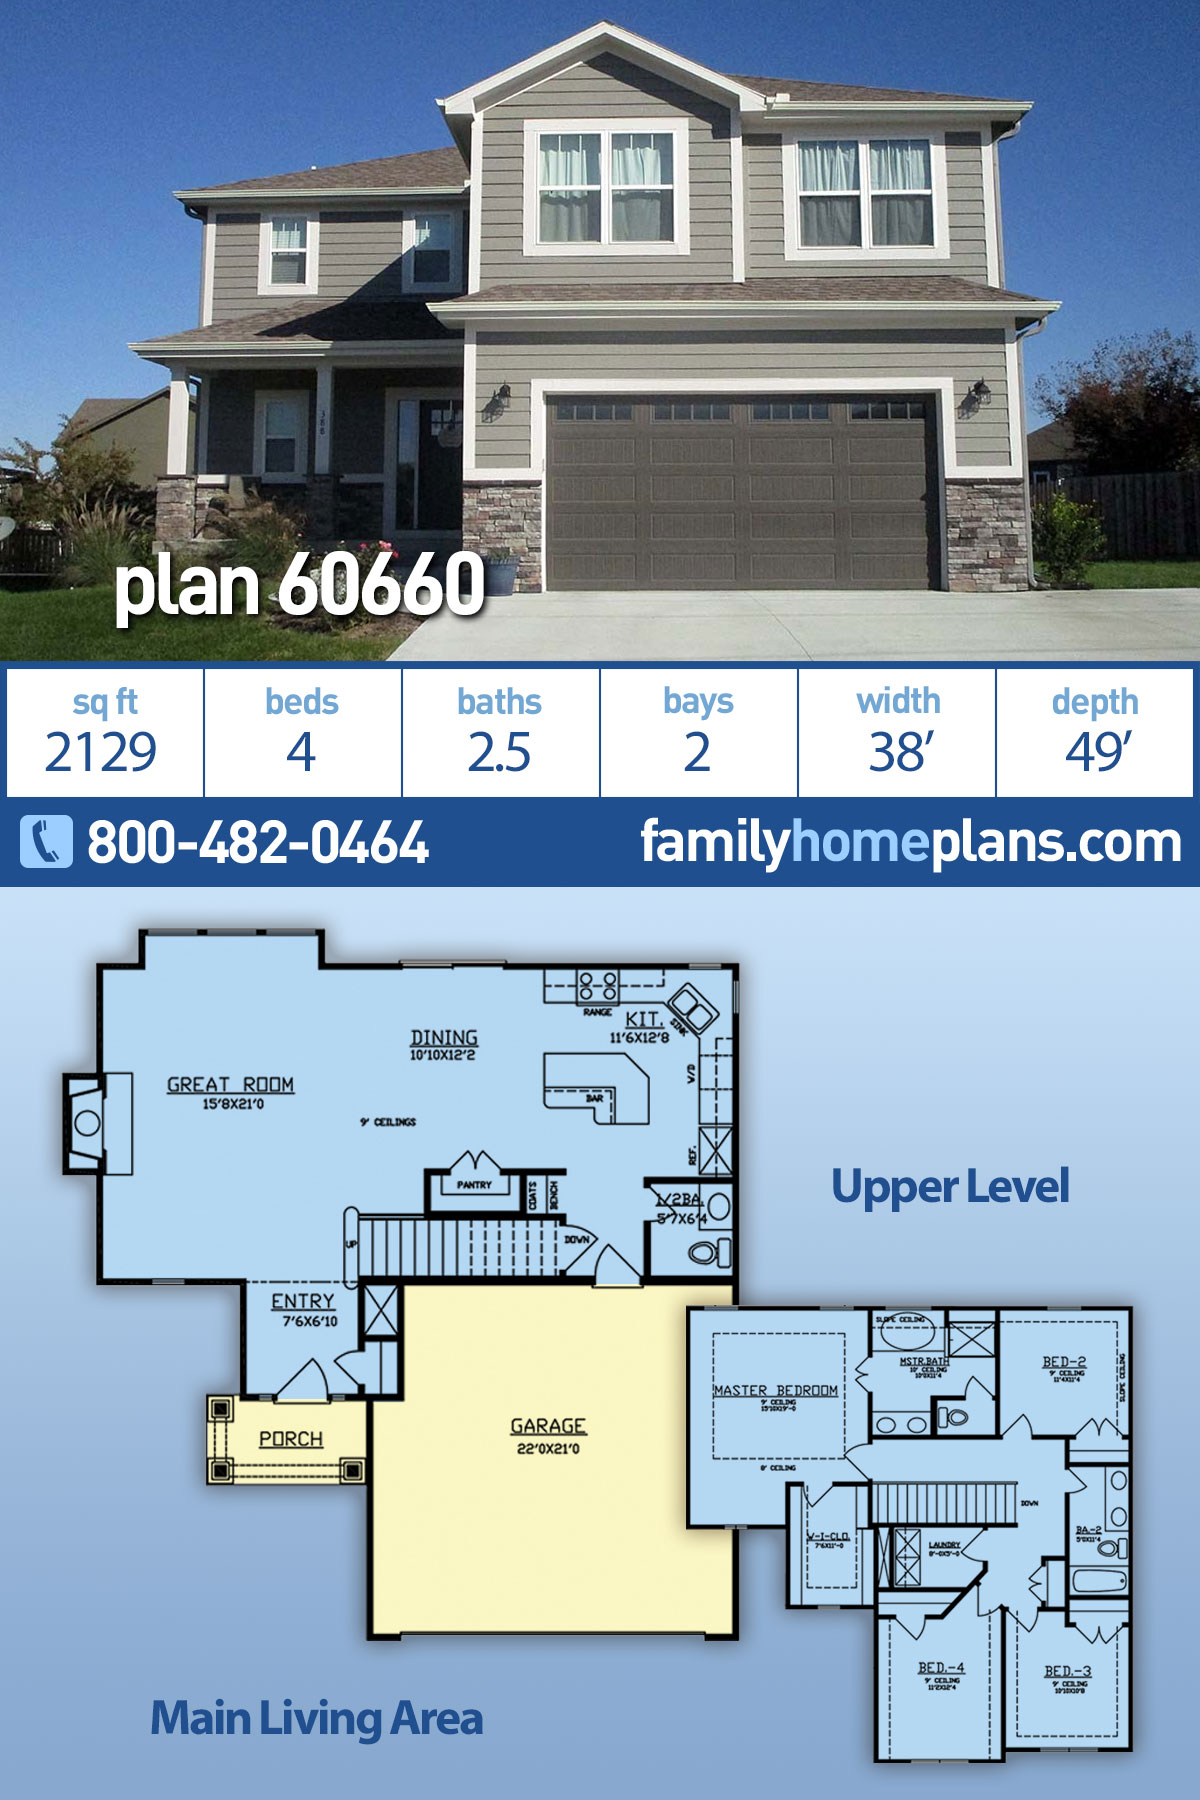 Traditional House Plan 60660 with 4 Beds, 3 Baths, 2 Car Garage